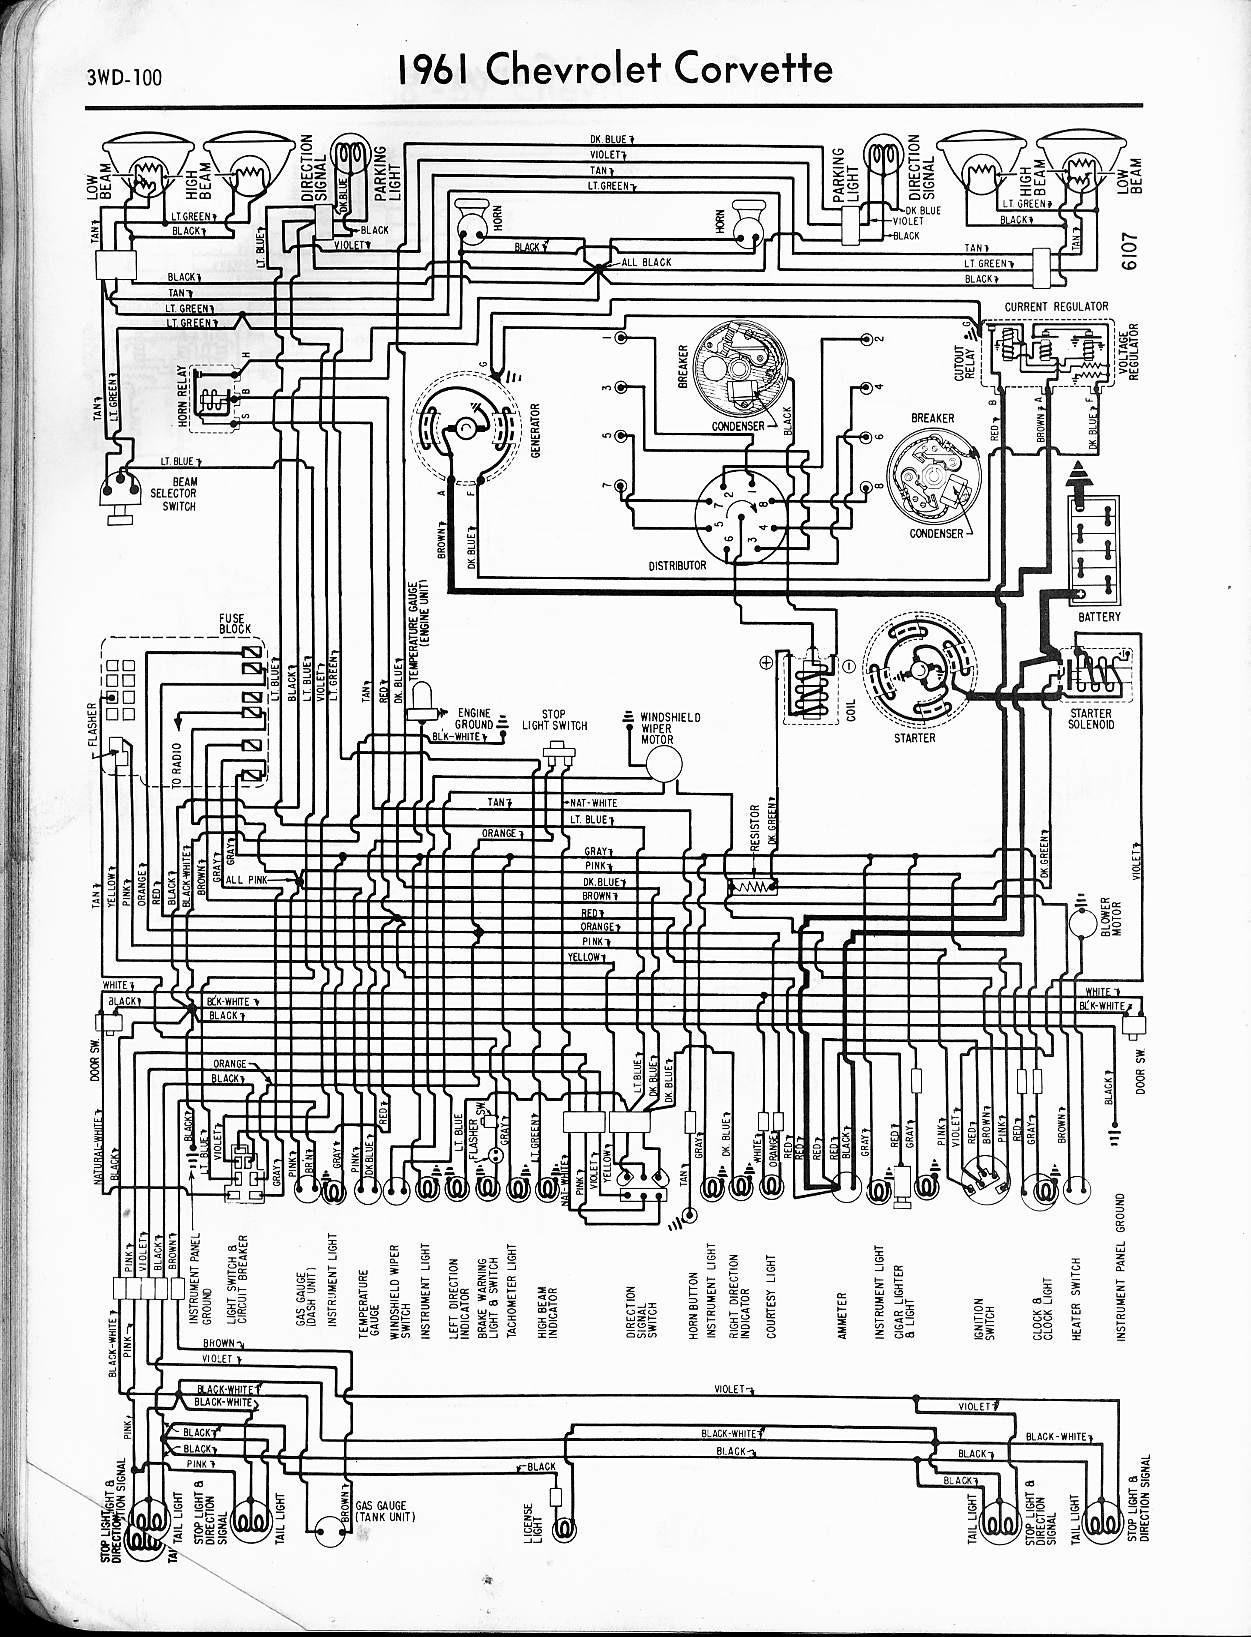 1980 Plymouth Volare Engine Harness Diagram Wiring Schematic ...